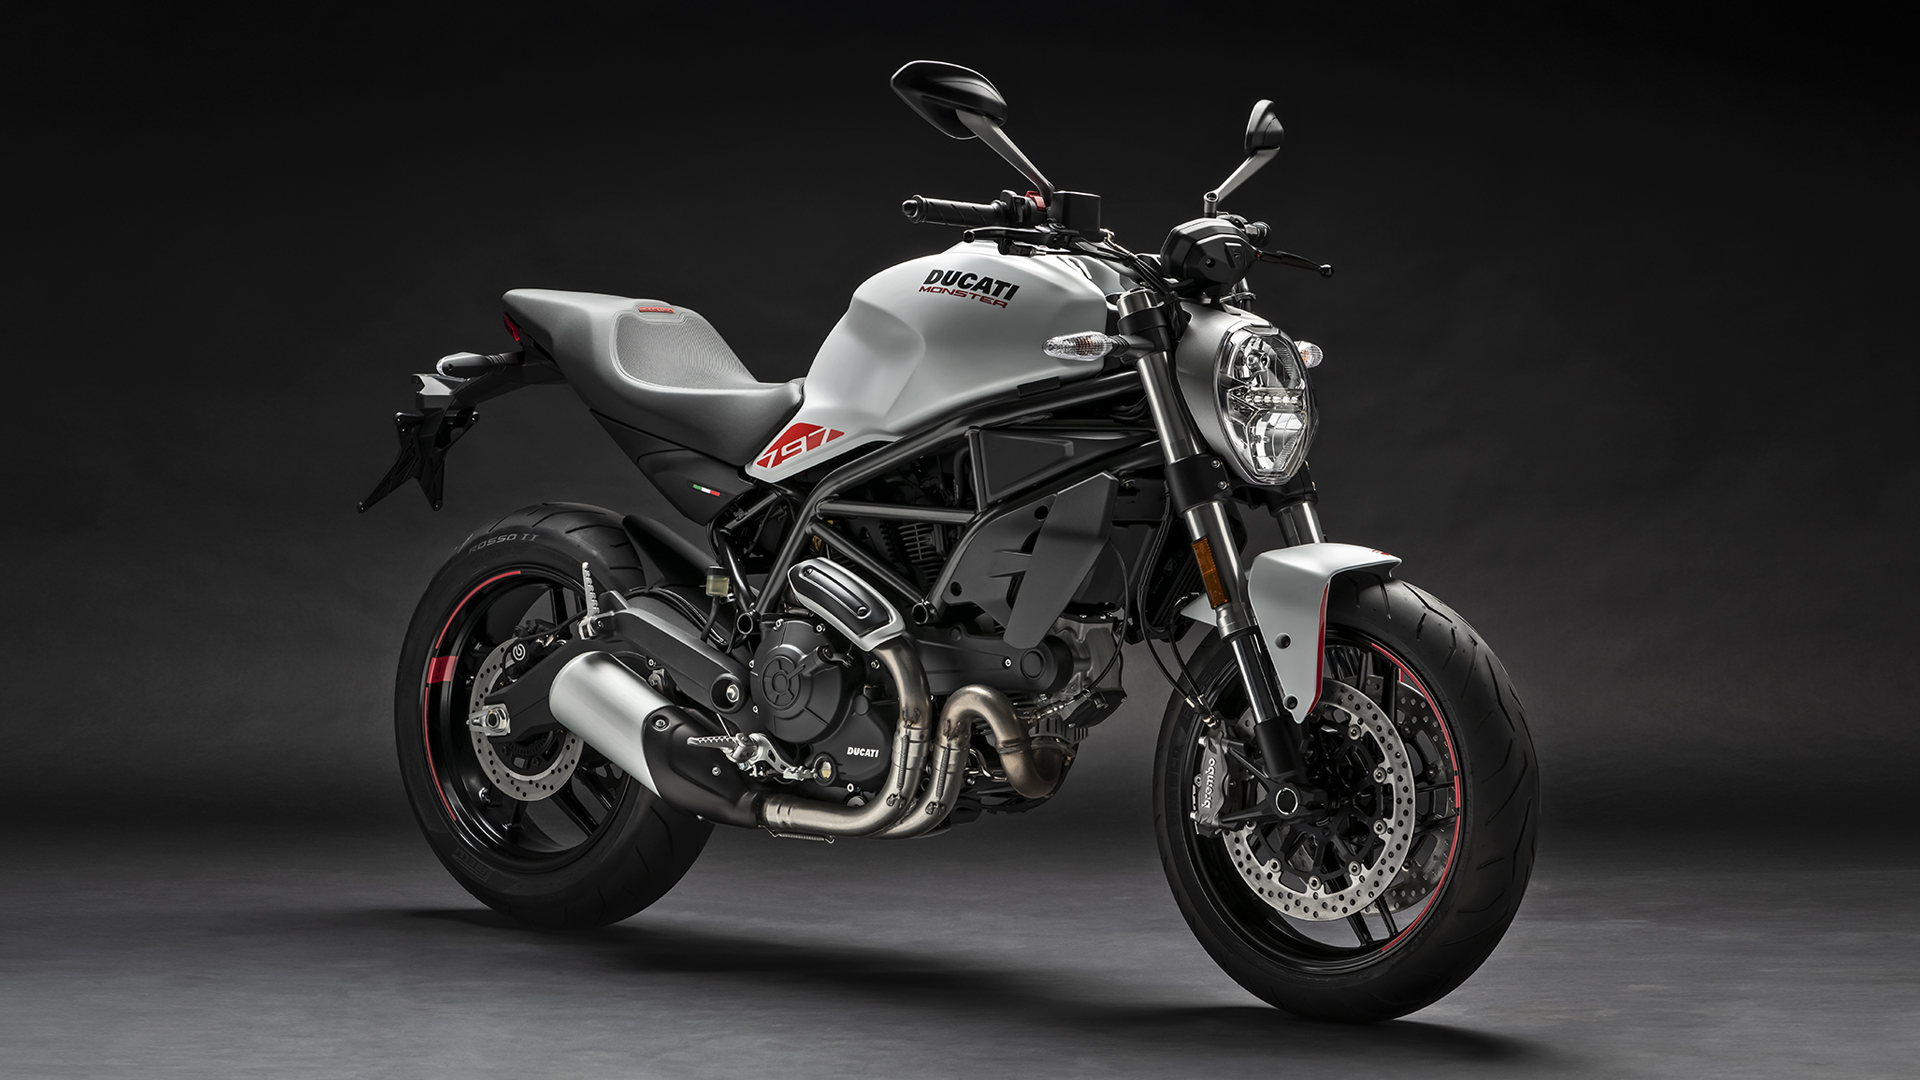 2014 Ducati Monster 1200 - Water-Cooling an Icon - Asphalt